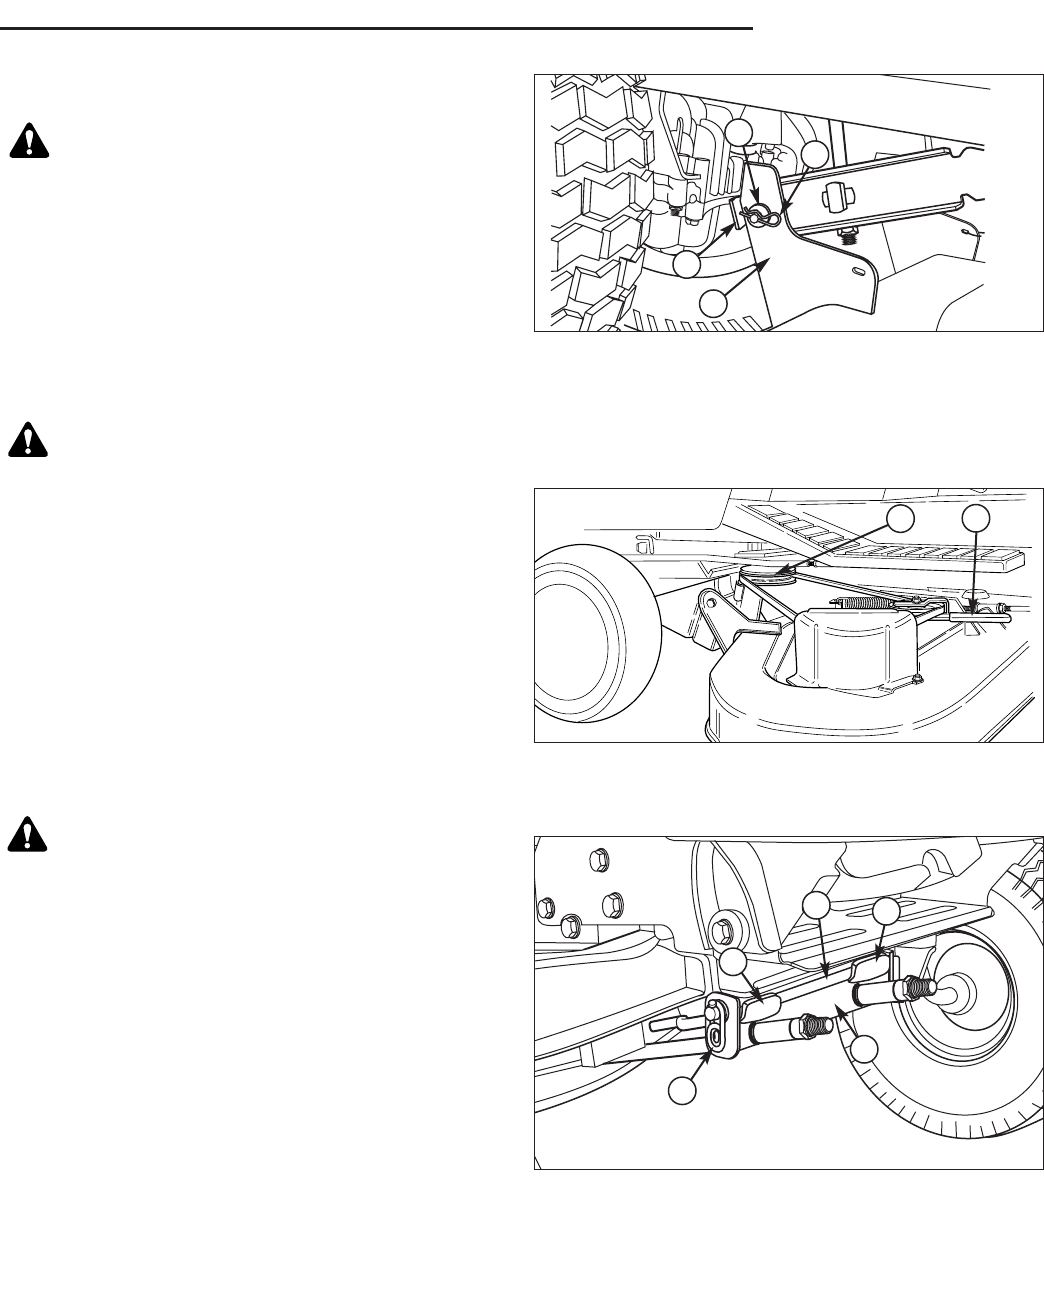 Page 17 of Snapper Lawn Mower LT-200 User Guide